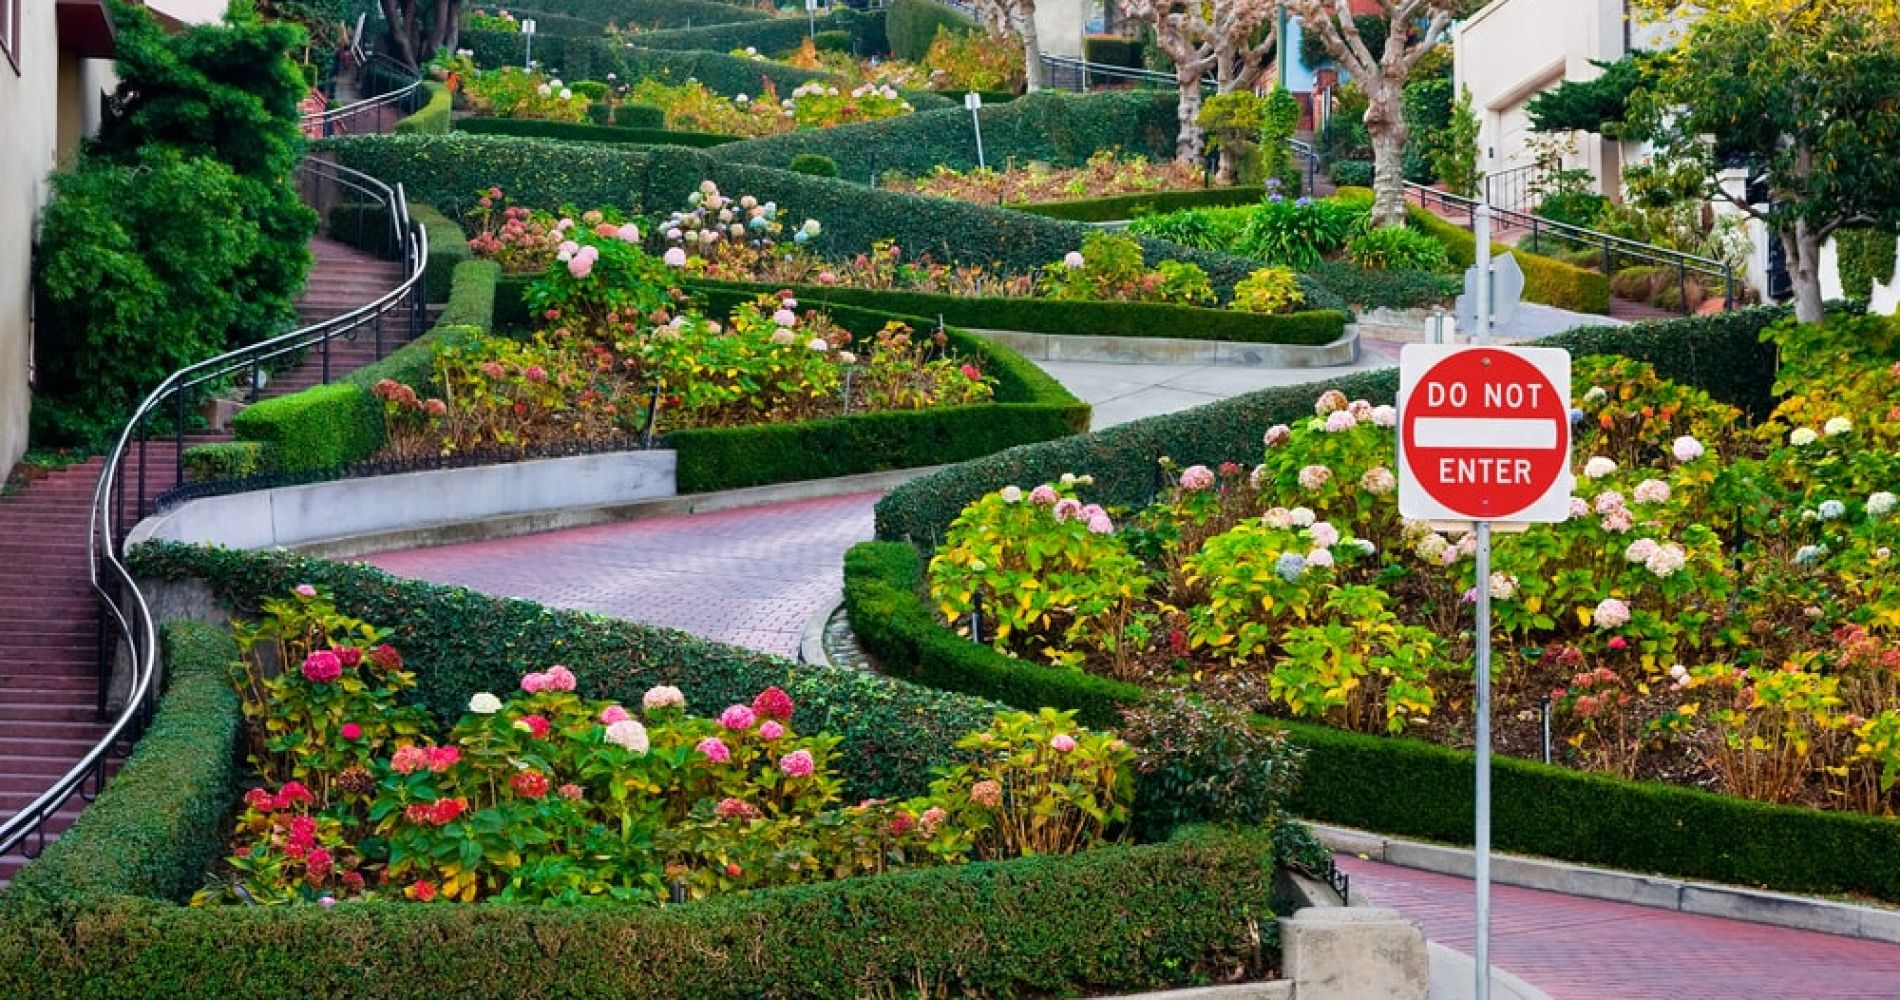 Take a Walk Down Lombard Street in San Francisco - The Most Crooked Street in the World